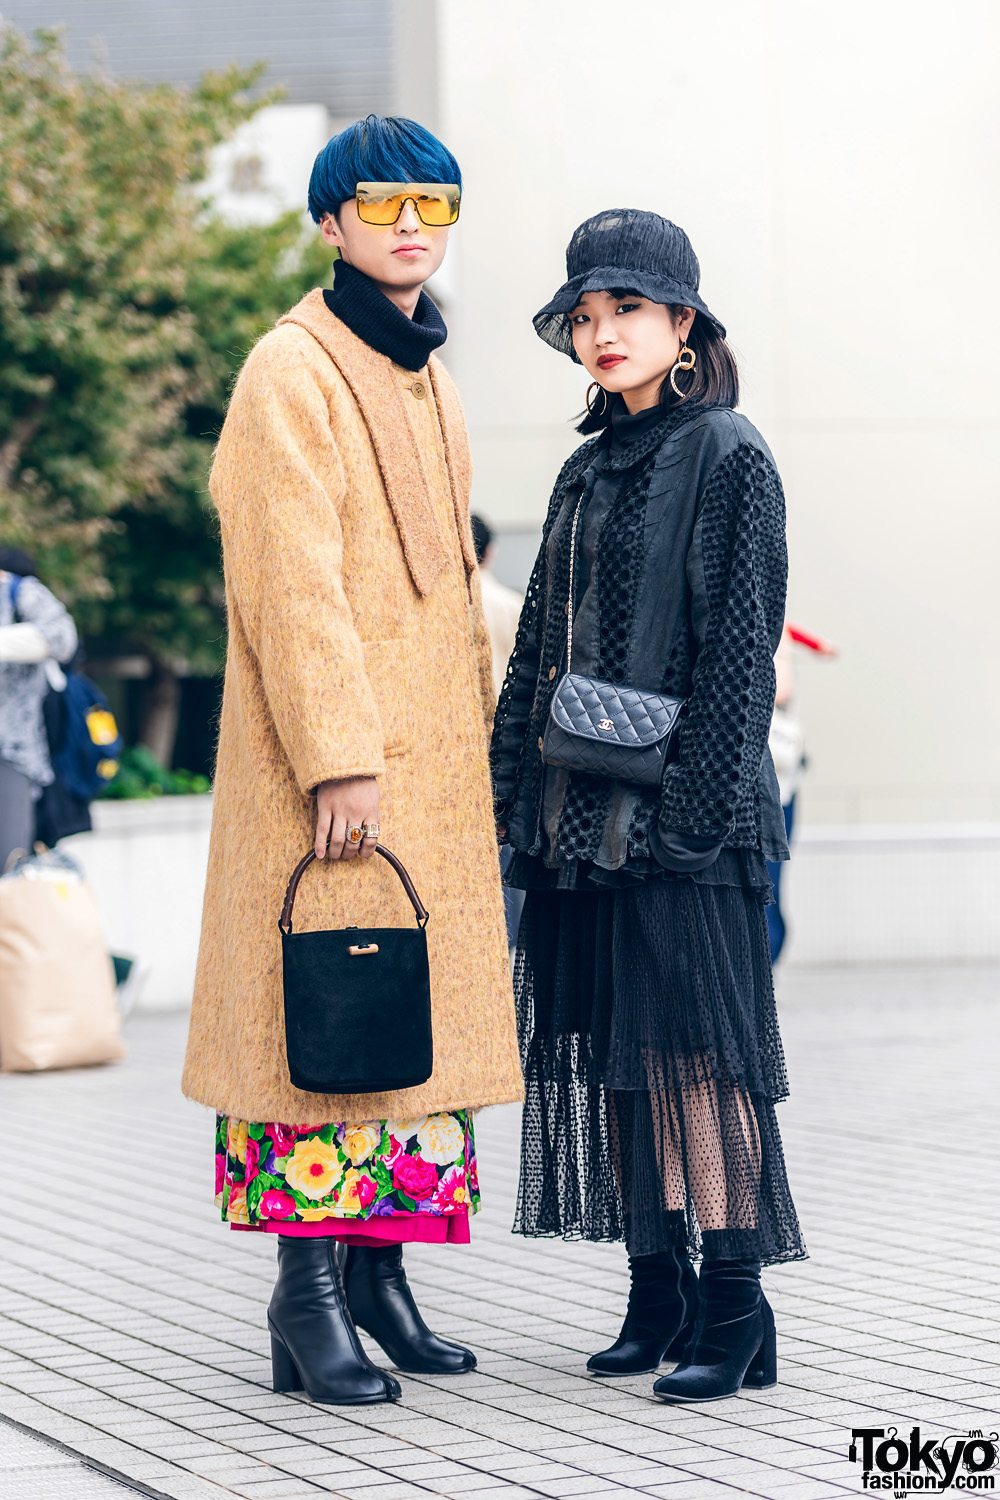 Bunka Fashion College Street Styles w/ Oversized Sunglasses, Cloche Hat, Furry Coat, Textured Eyelet Jacket, Chanel Quilted Bag & Tabi Boots